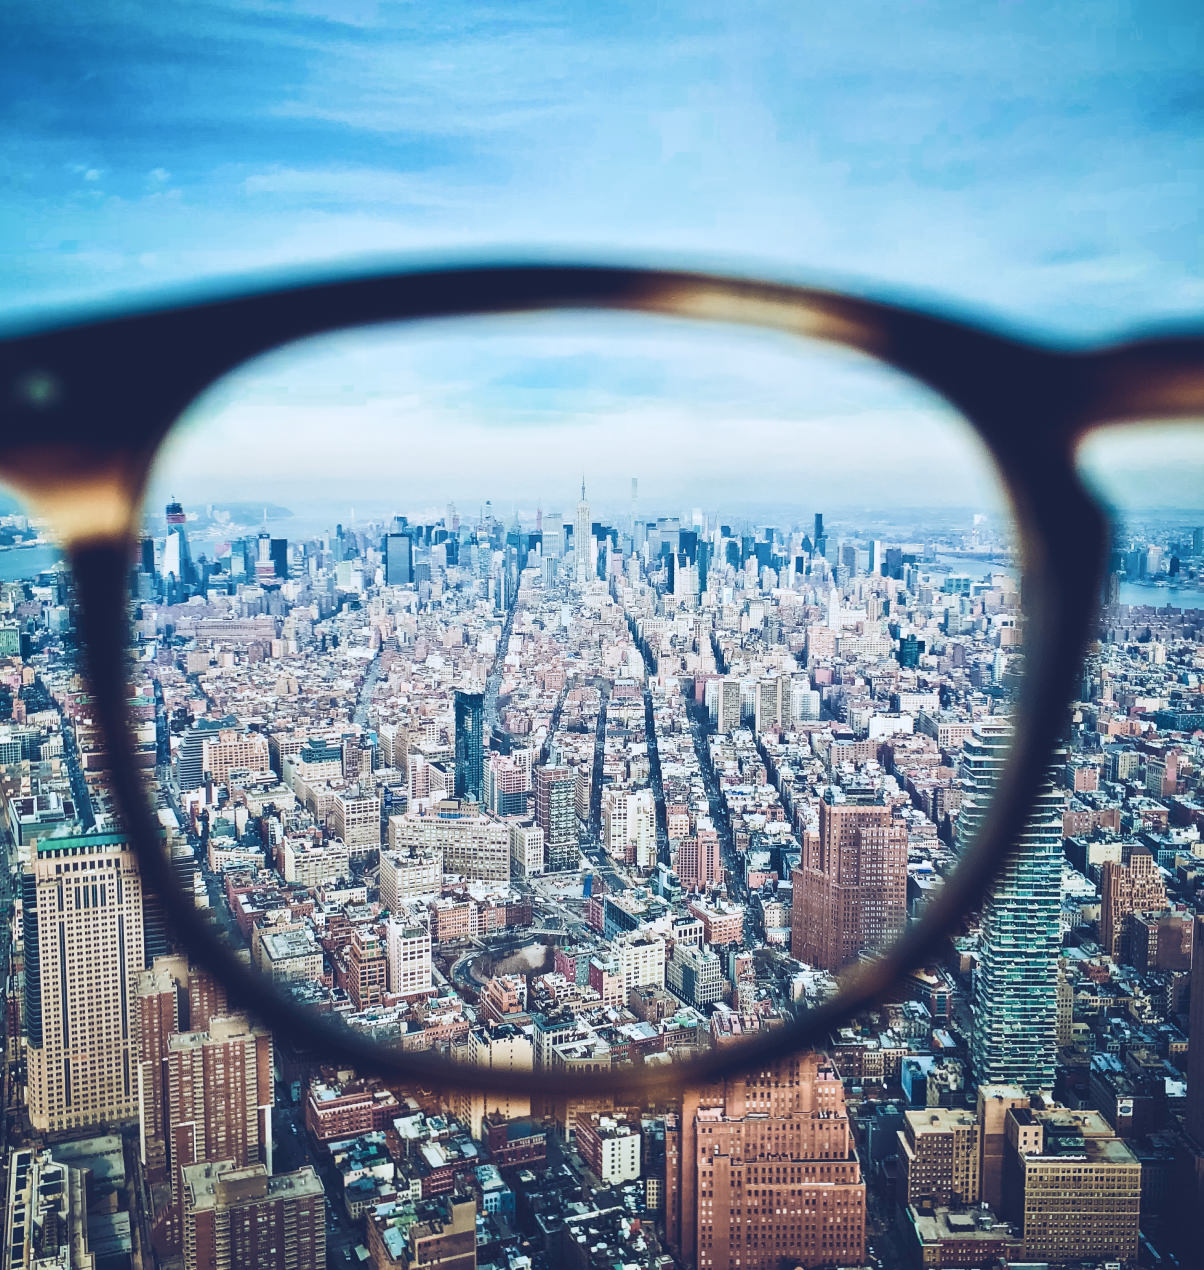 Eyeglasses looking through to city